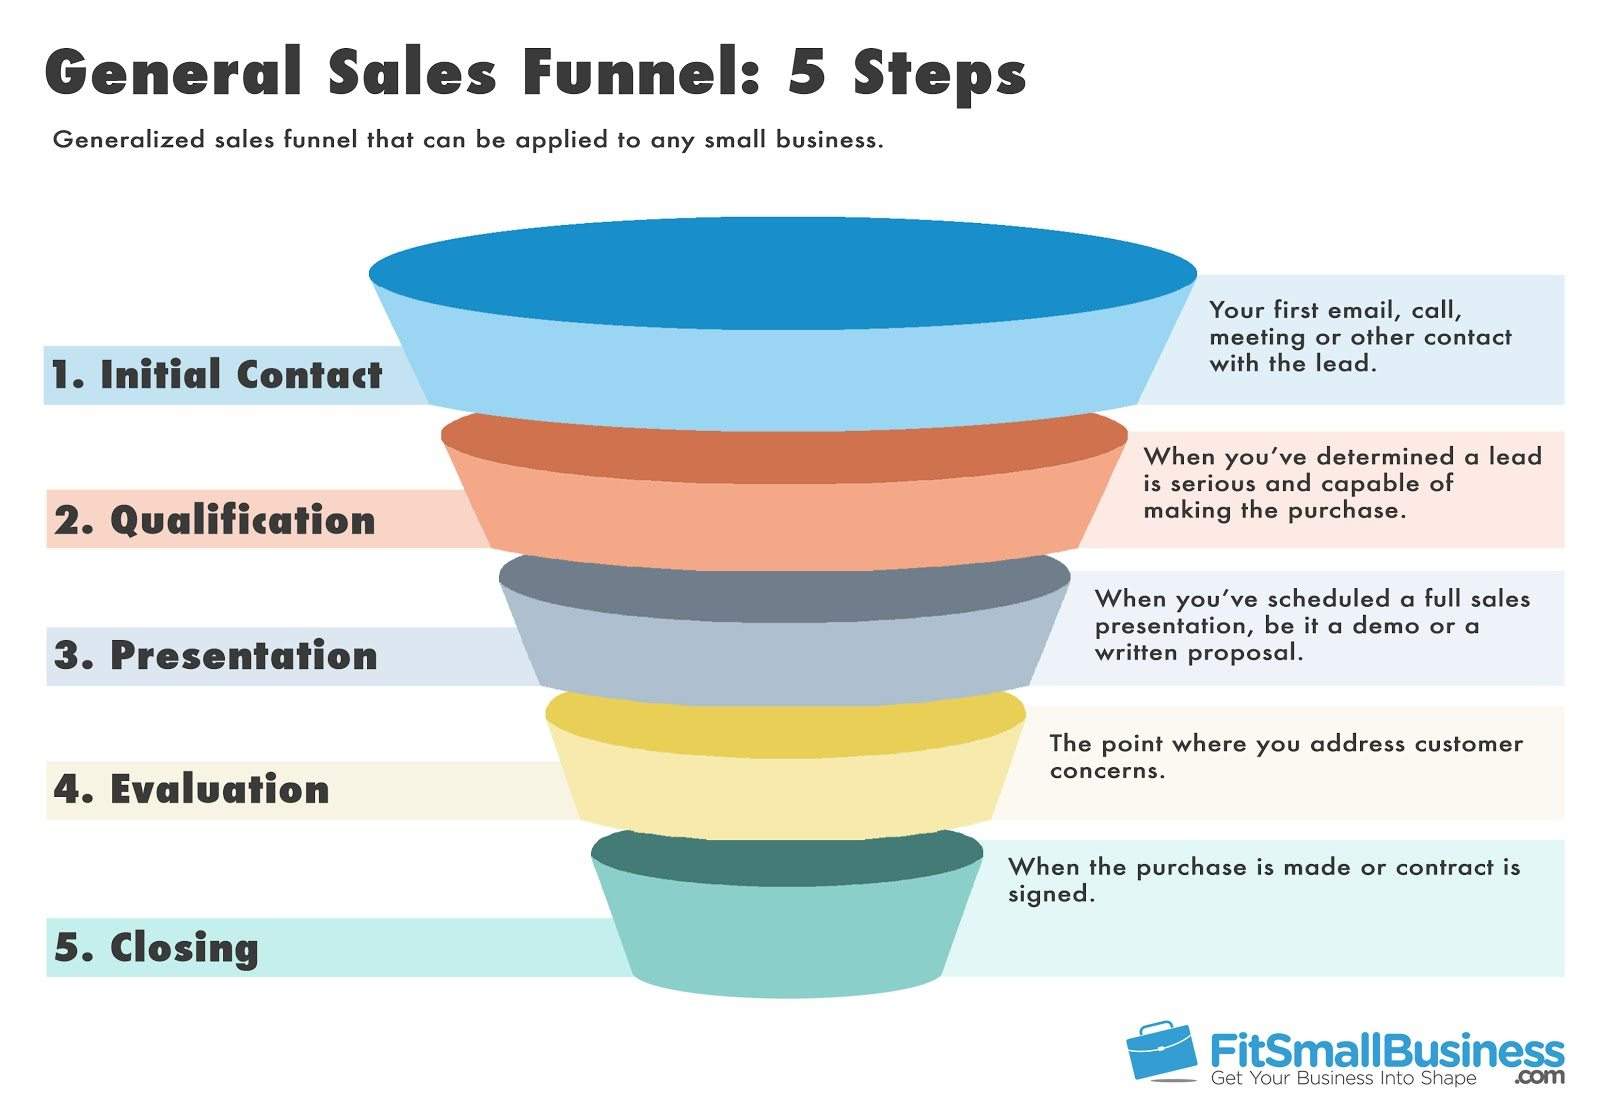 5 Steps Funnel - Sales Cycle